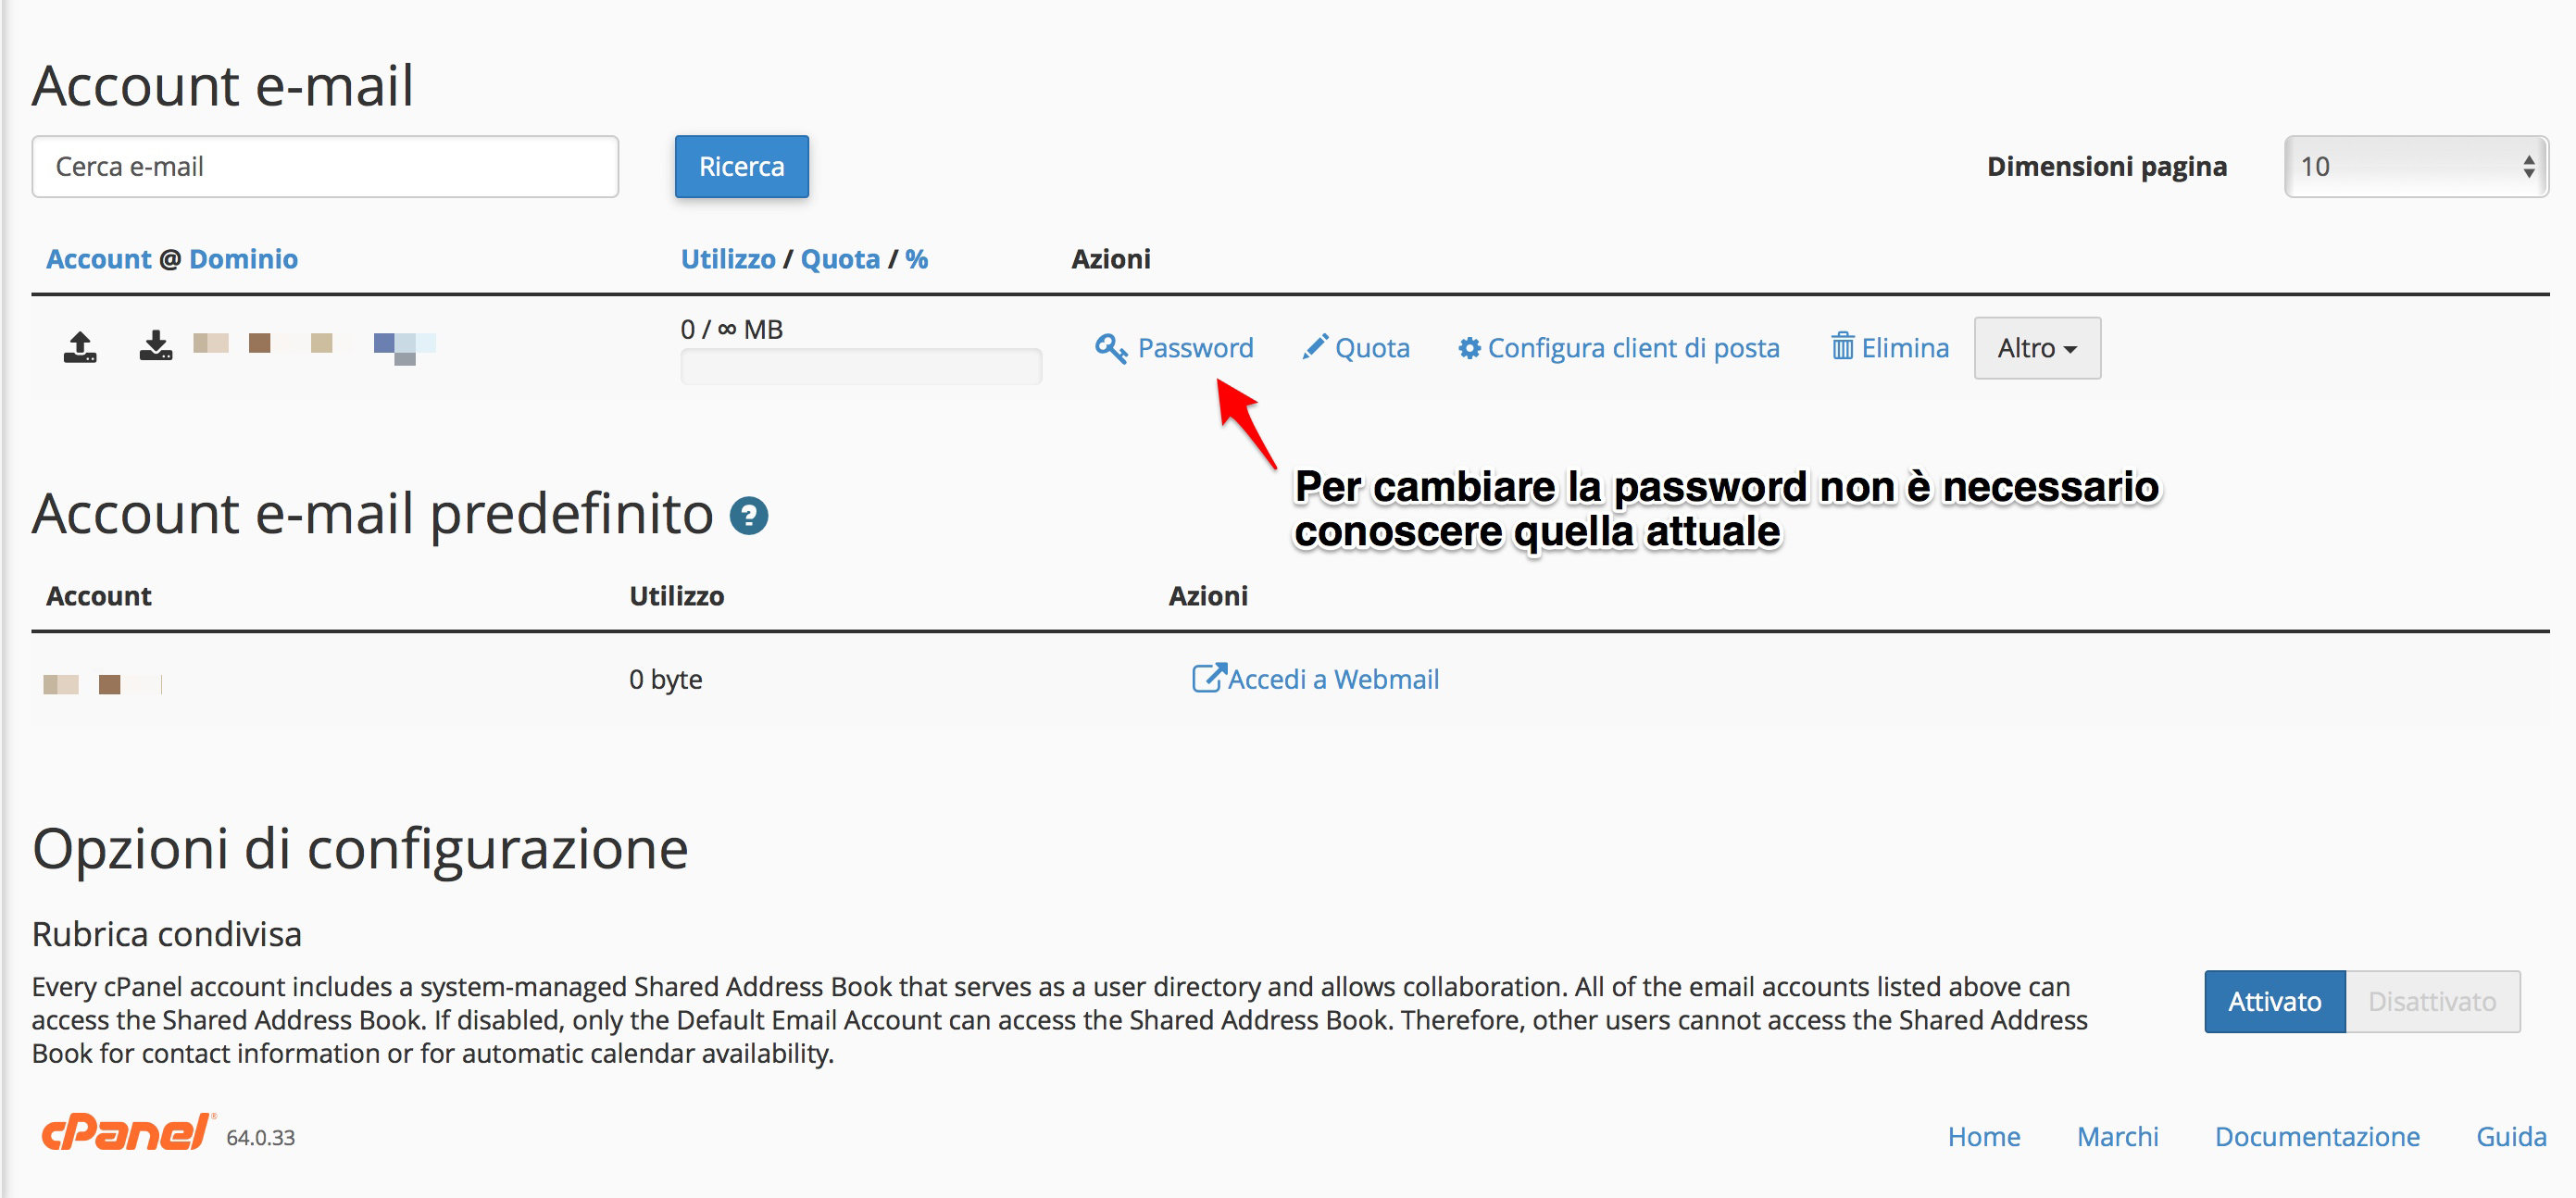 Come modificare la password di un indirizzo mail